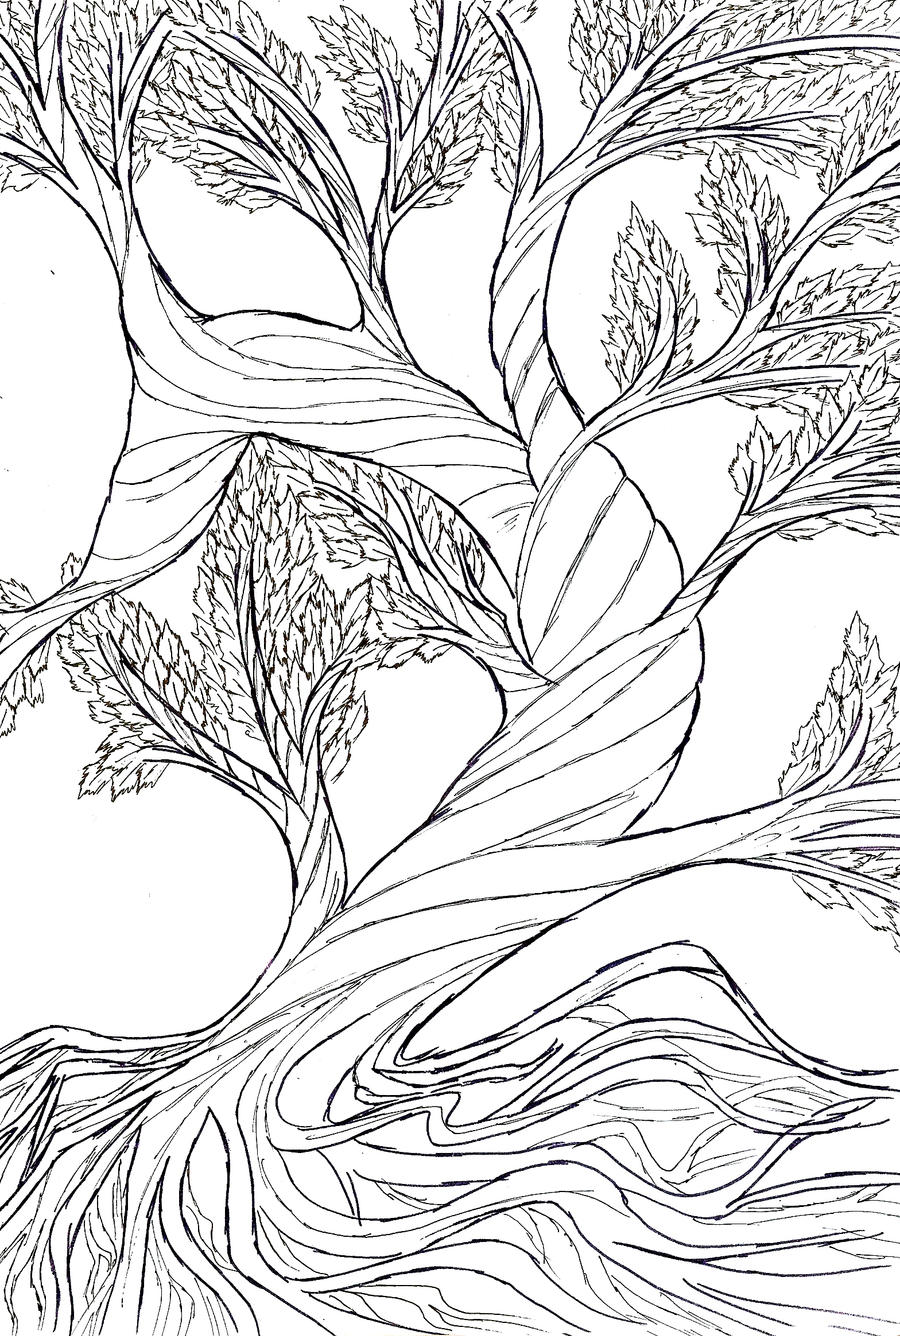 Line Art Of Tree : Smiling tree jpg digital image lineart by kathyahrens